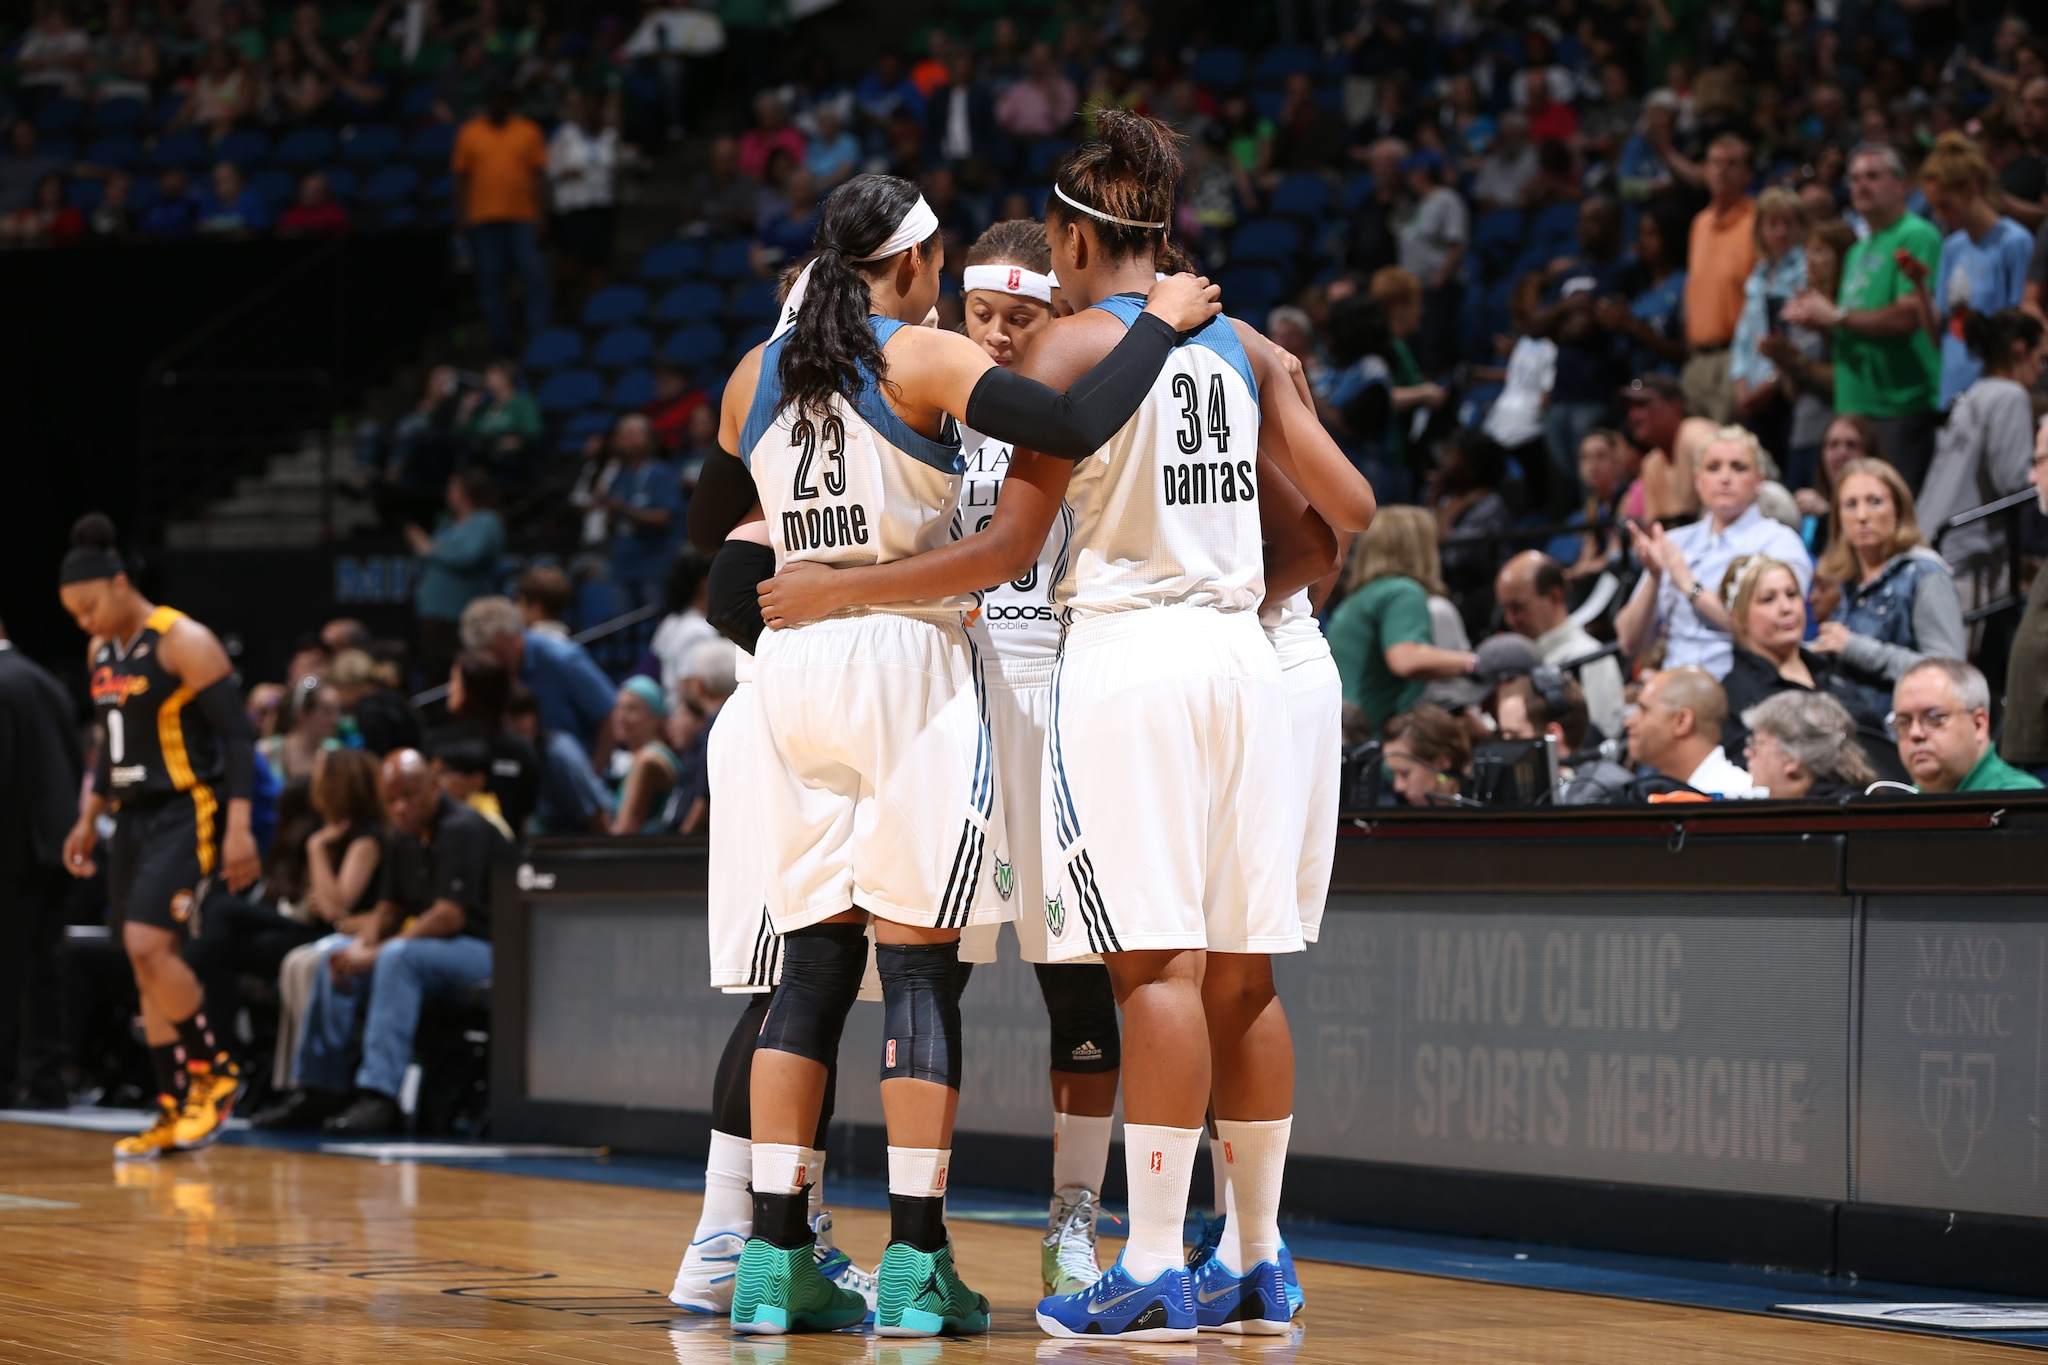 MINNEAPOLIS, MN - JUNE 5:  The Minnesota Lynx huddle before the game against the Tulsa Shock during the season opener of their WNBA game on June 5, 2015 at Target Center in Minneapolis, Minnesota. NOTE TO USER: User expressly acknowledges and agrees that, by downloading and or using this Photograph, user is consenting to the terms and conditions of the Getty Images License Agreement. Mandatory Copyright Notice: Copyright 2015 NBAE (Photo by David Sherman/NBAE via Getty Images)